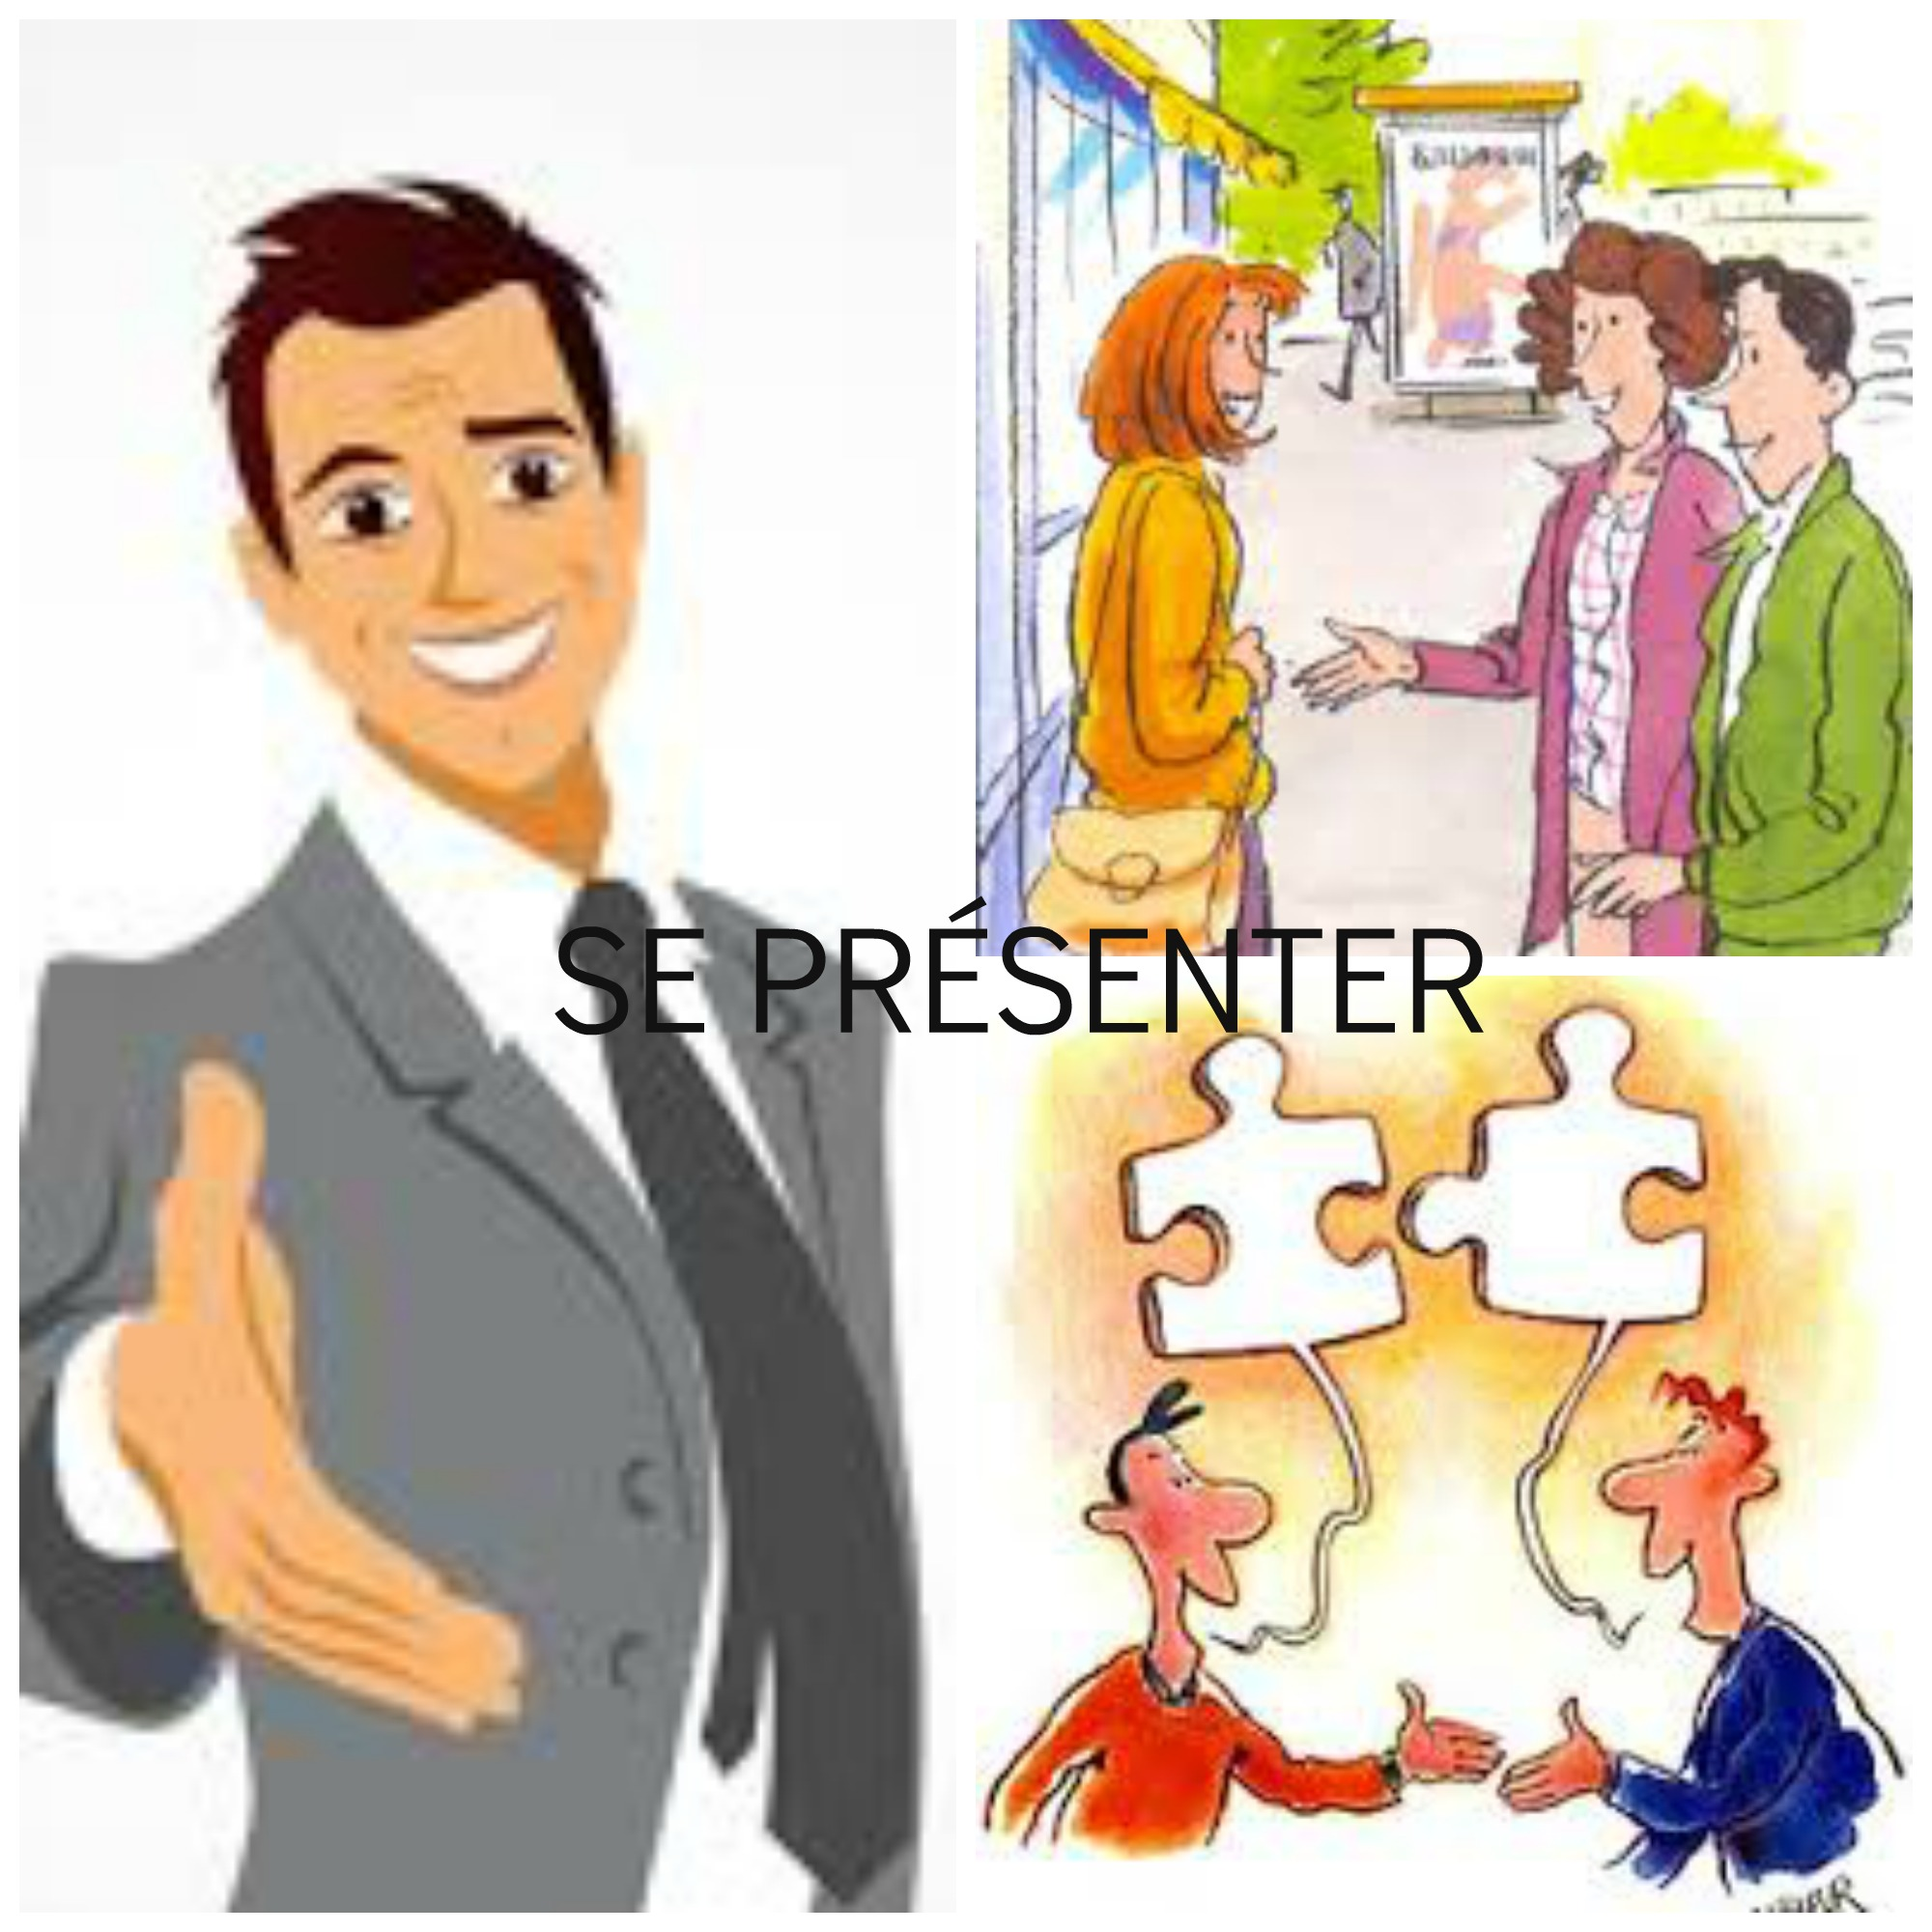 Se presenter site de rencontre